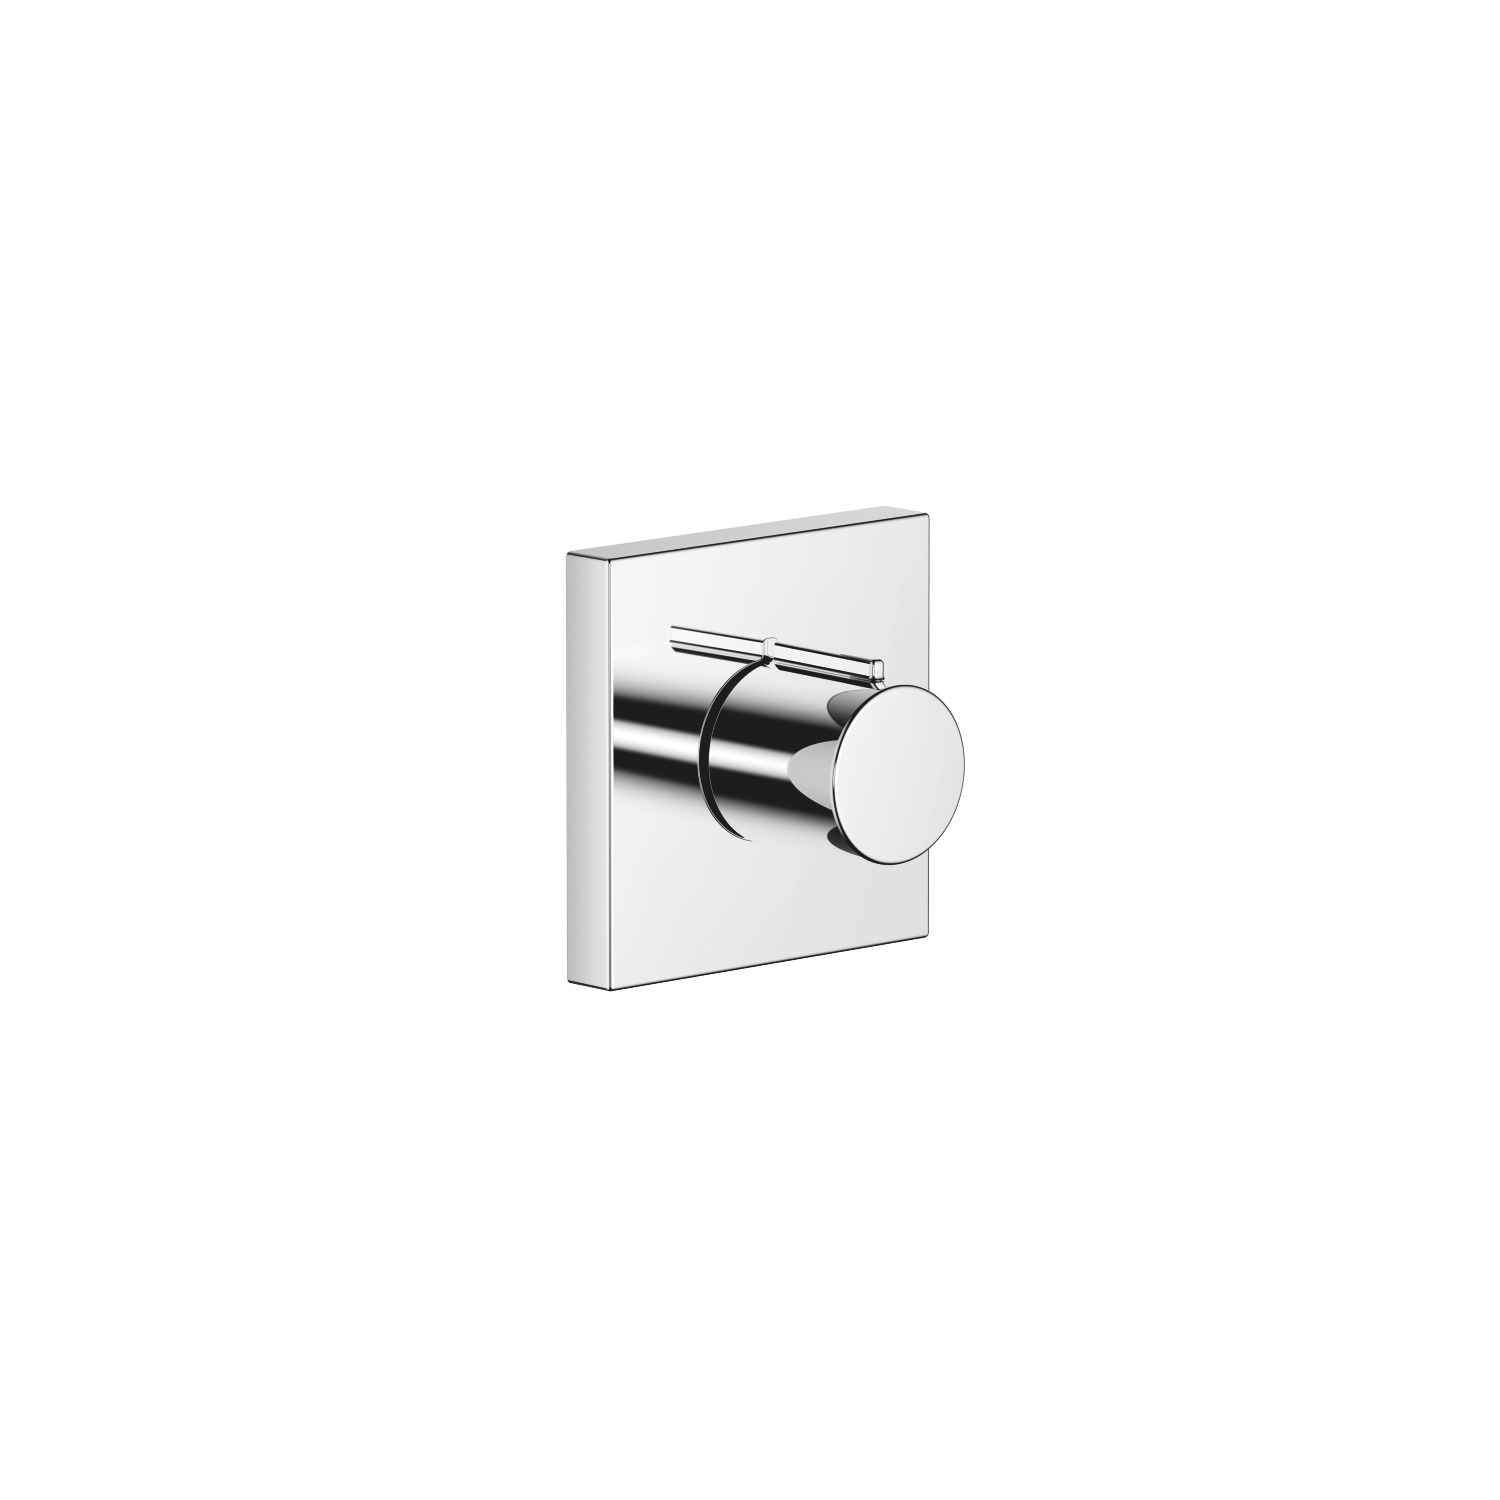 "Wall valve anti-clockwise closing 3/4"" - polished chrome"